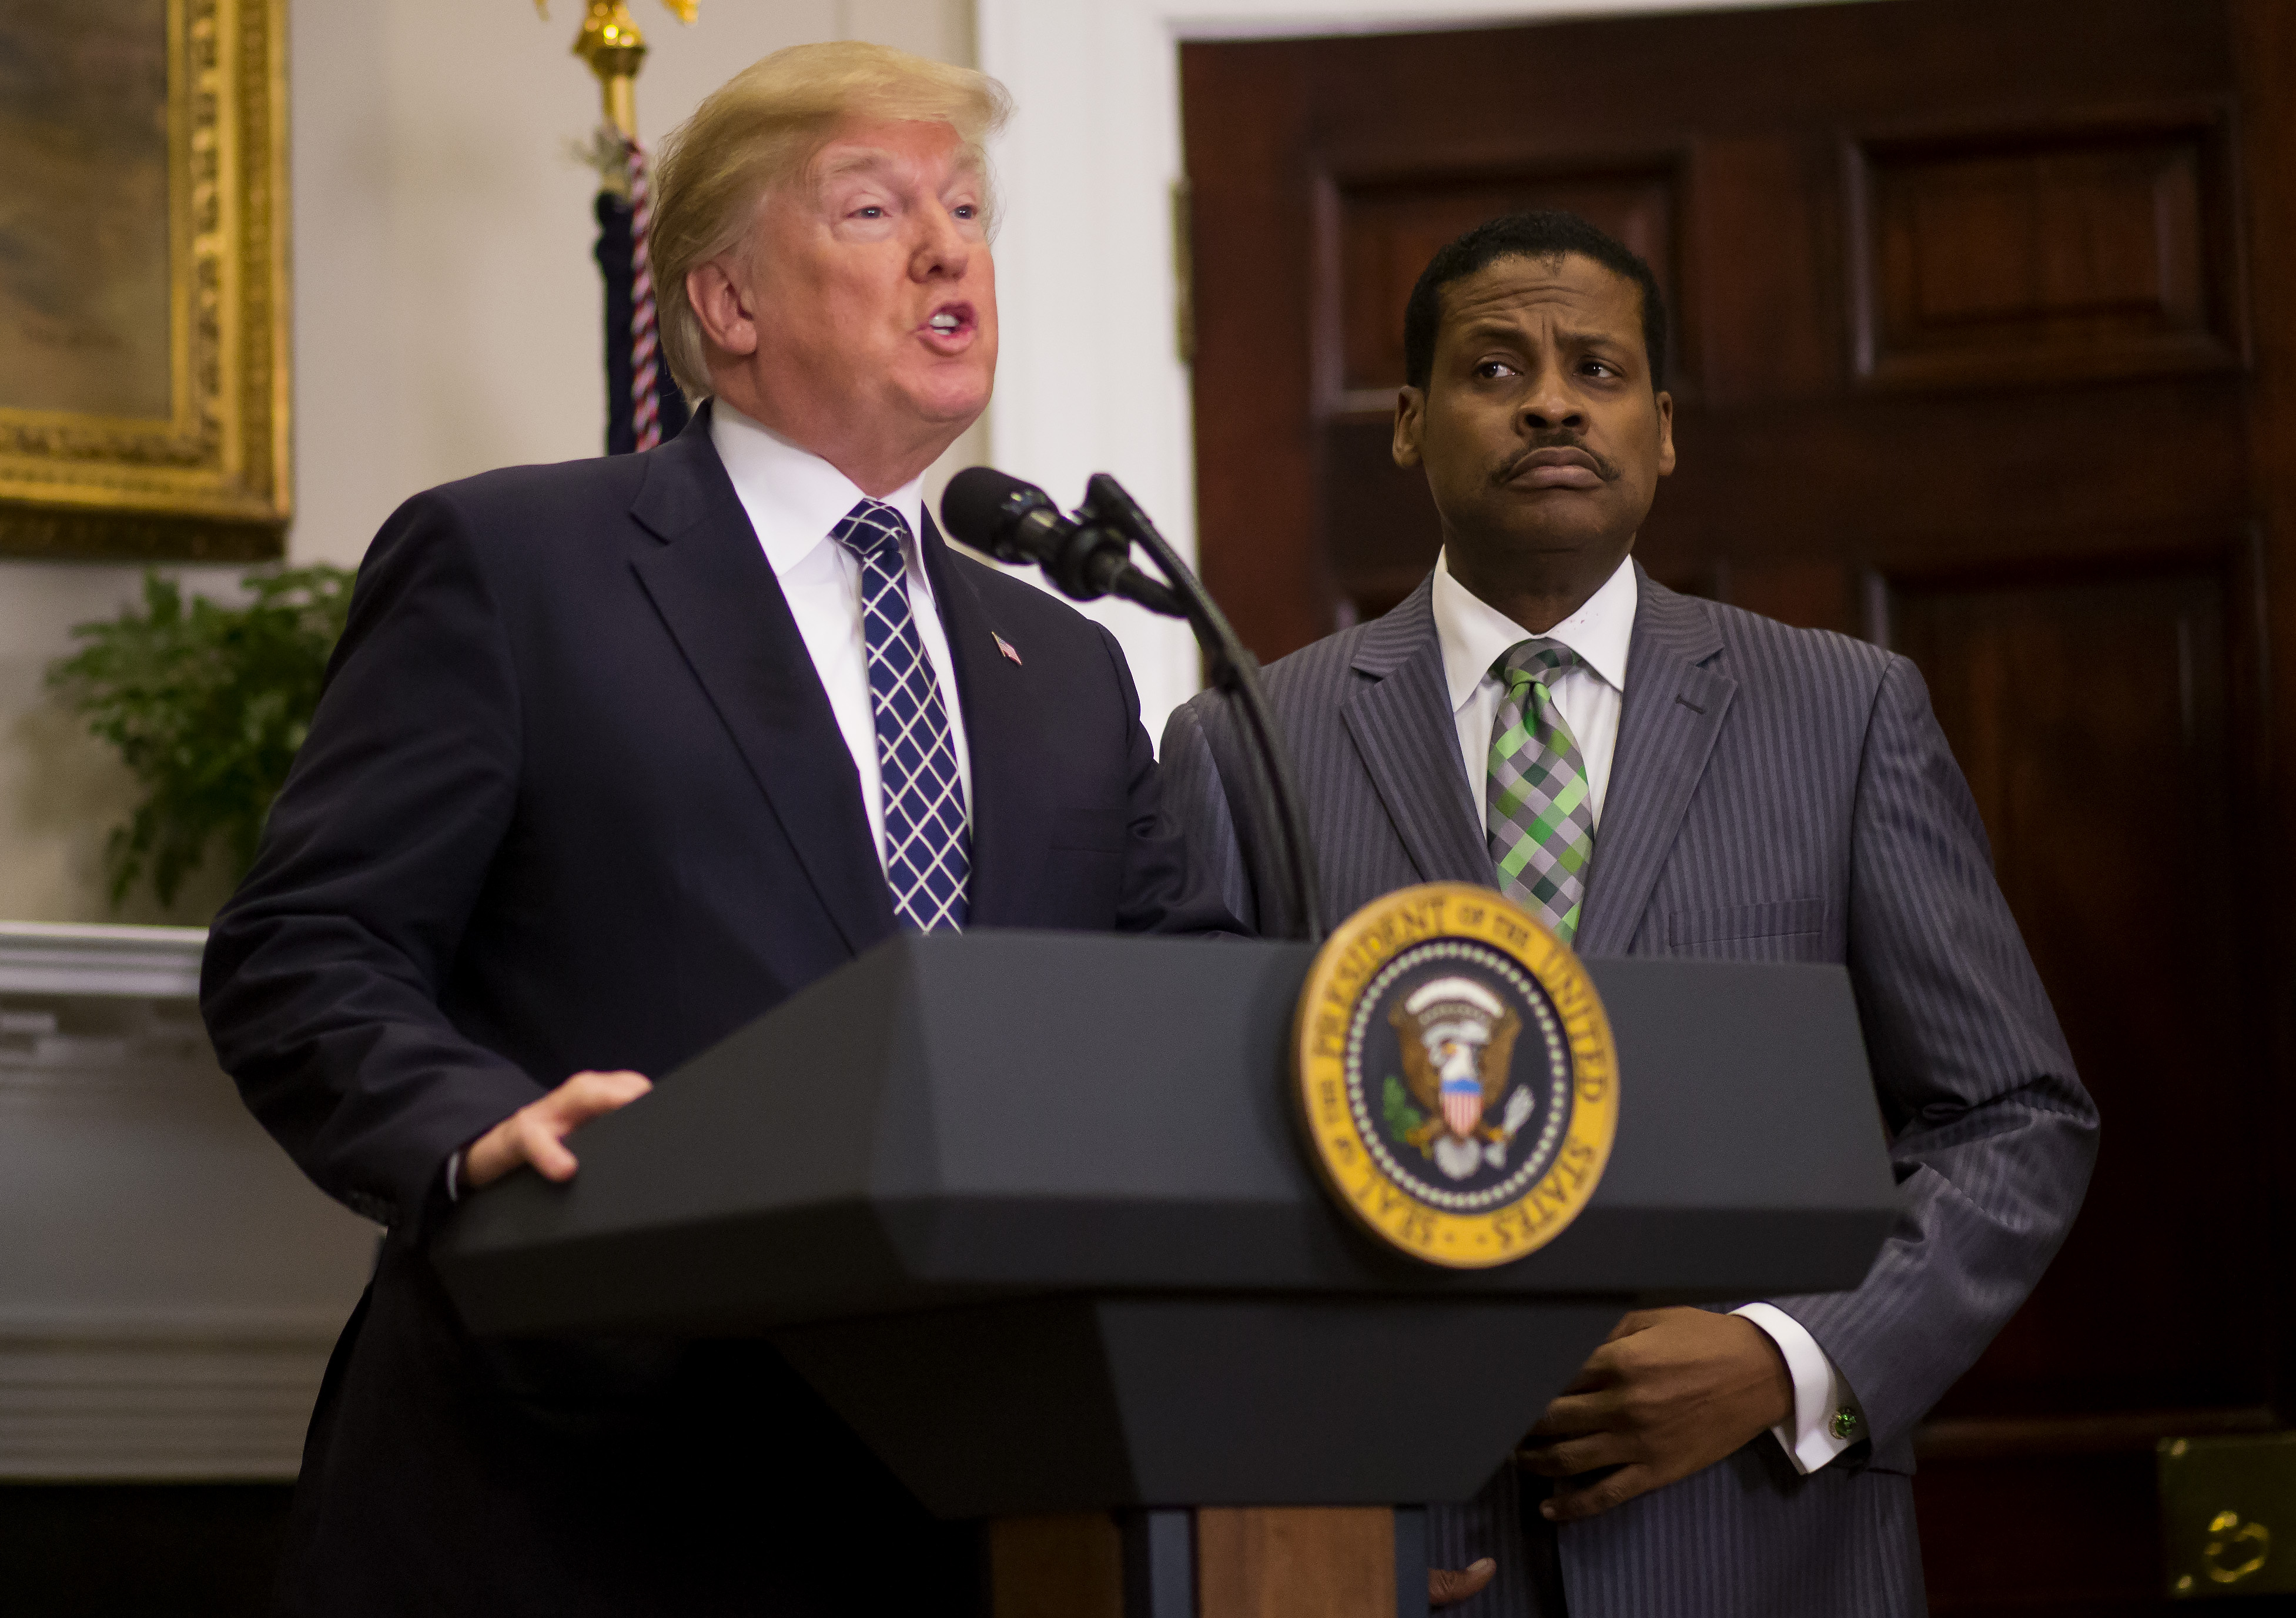 U.S. President Donald Trump, left, speaks while Martin Luther King Jr.'s nephew Isaac Newton Farris Jr. listens before the signing of a proclamation in the Roosevelt Room of the White House in Washington, D.C., U.S., on Friday, Jan. 12, 2018.